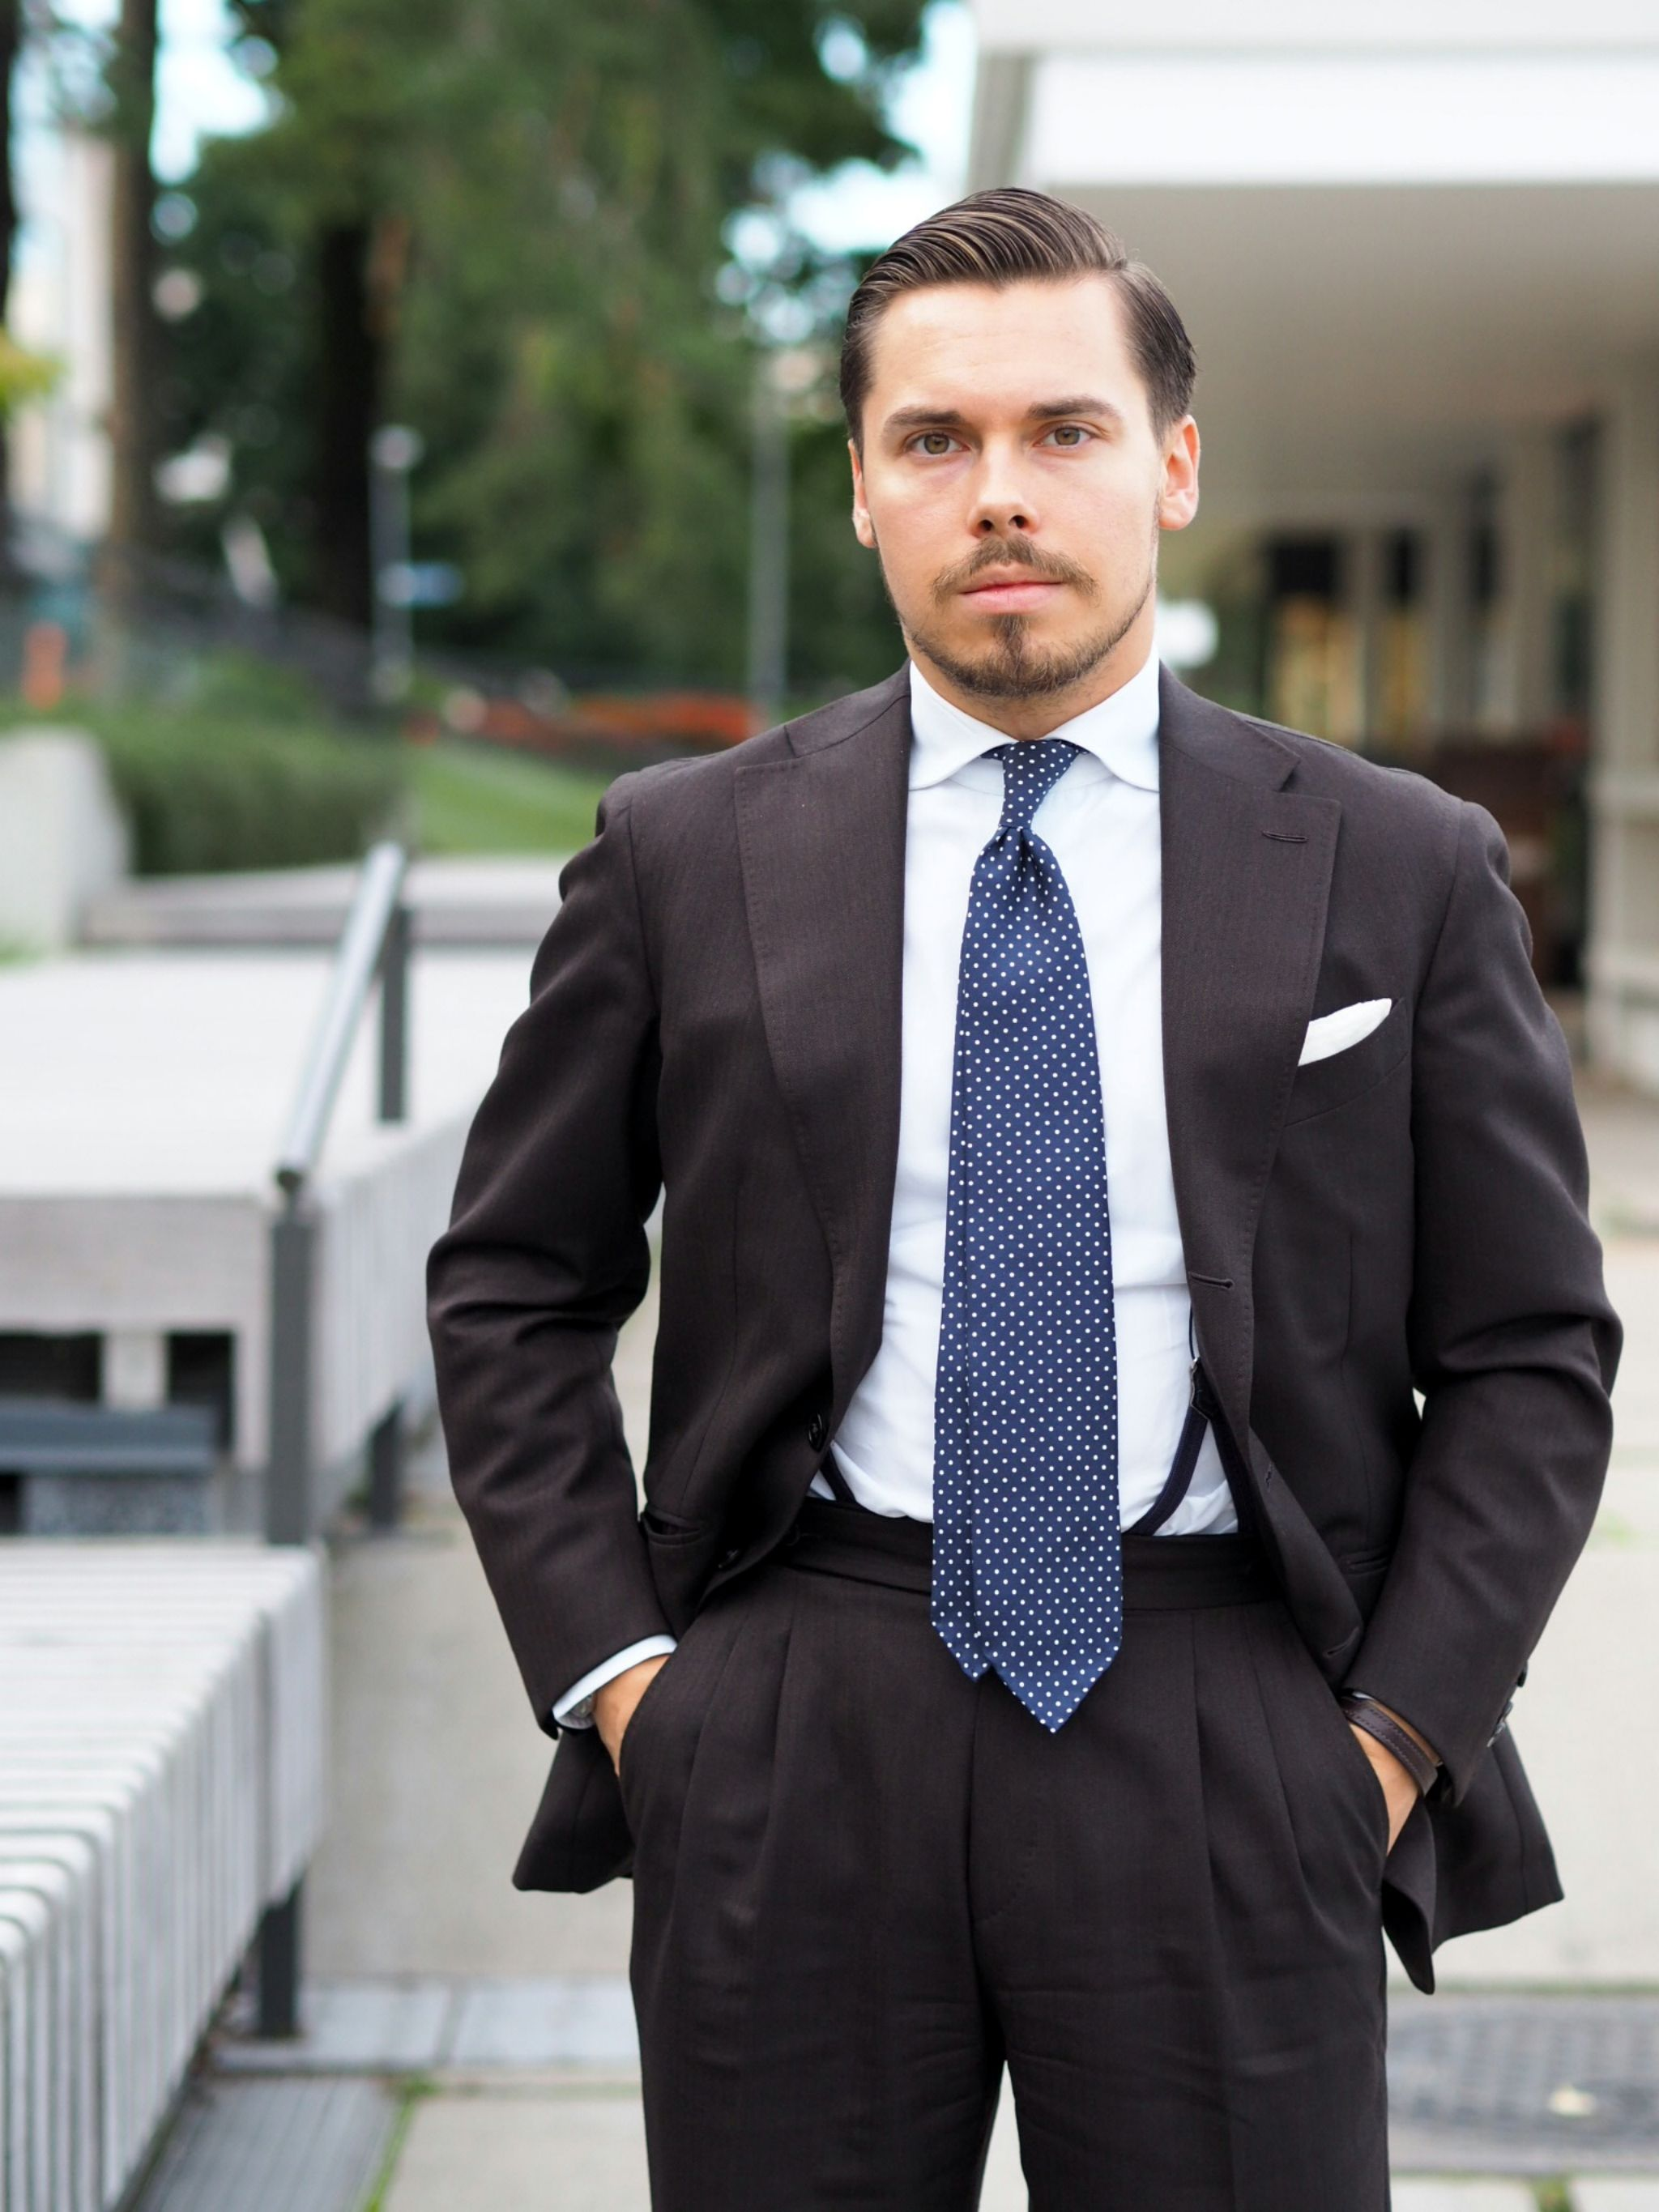 Autumnal business outfits - brown wool suit with blue polka dot tie